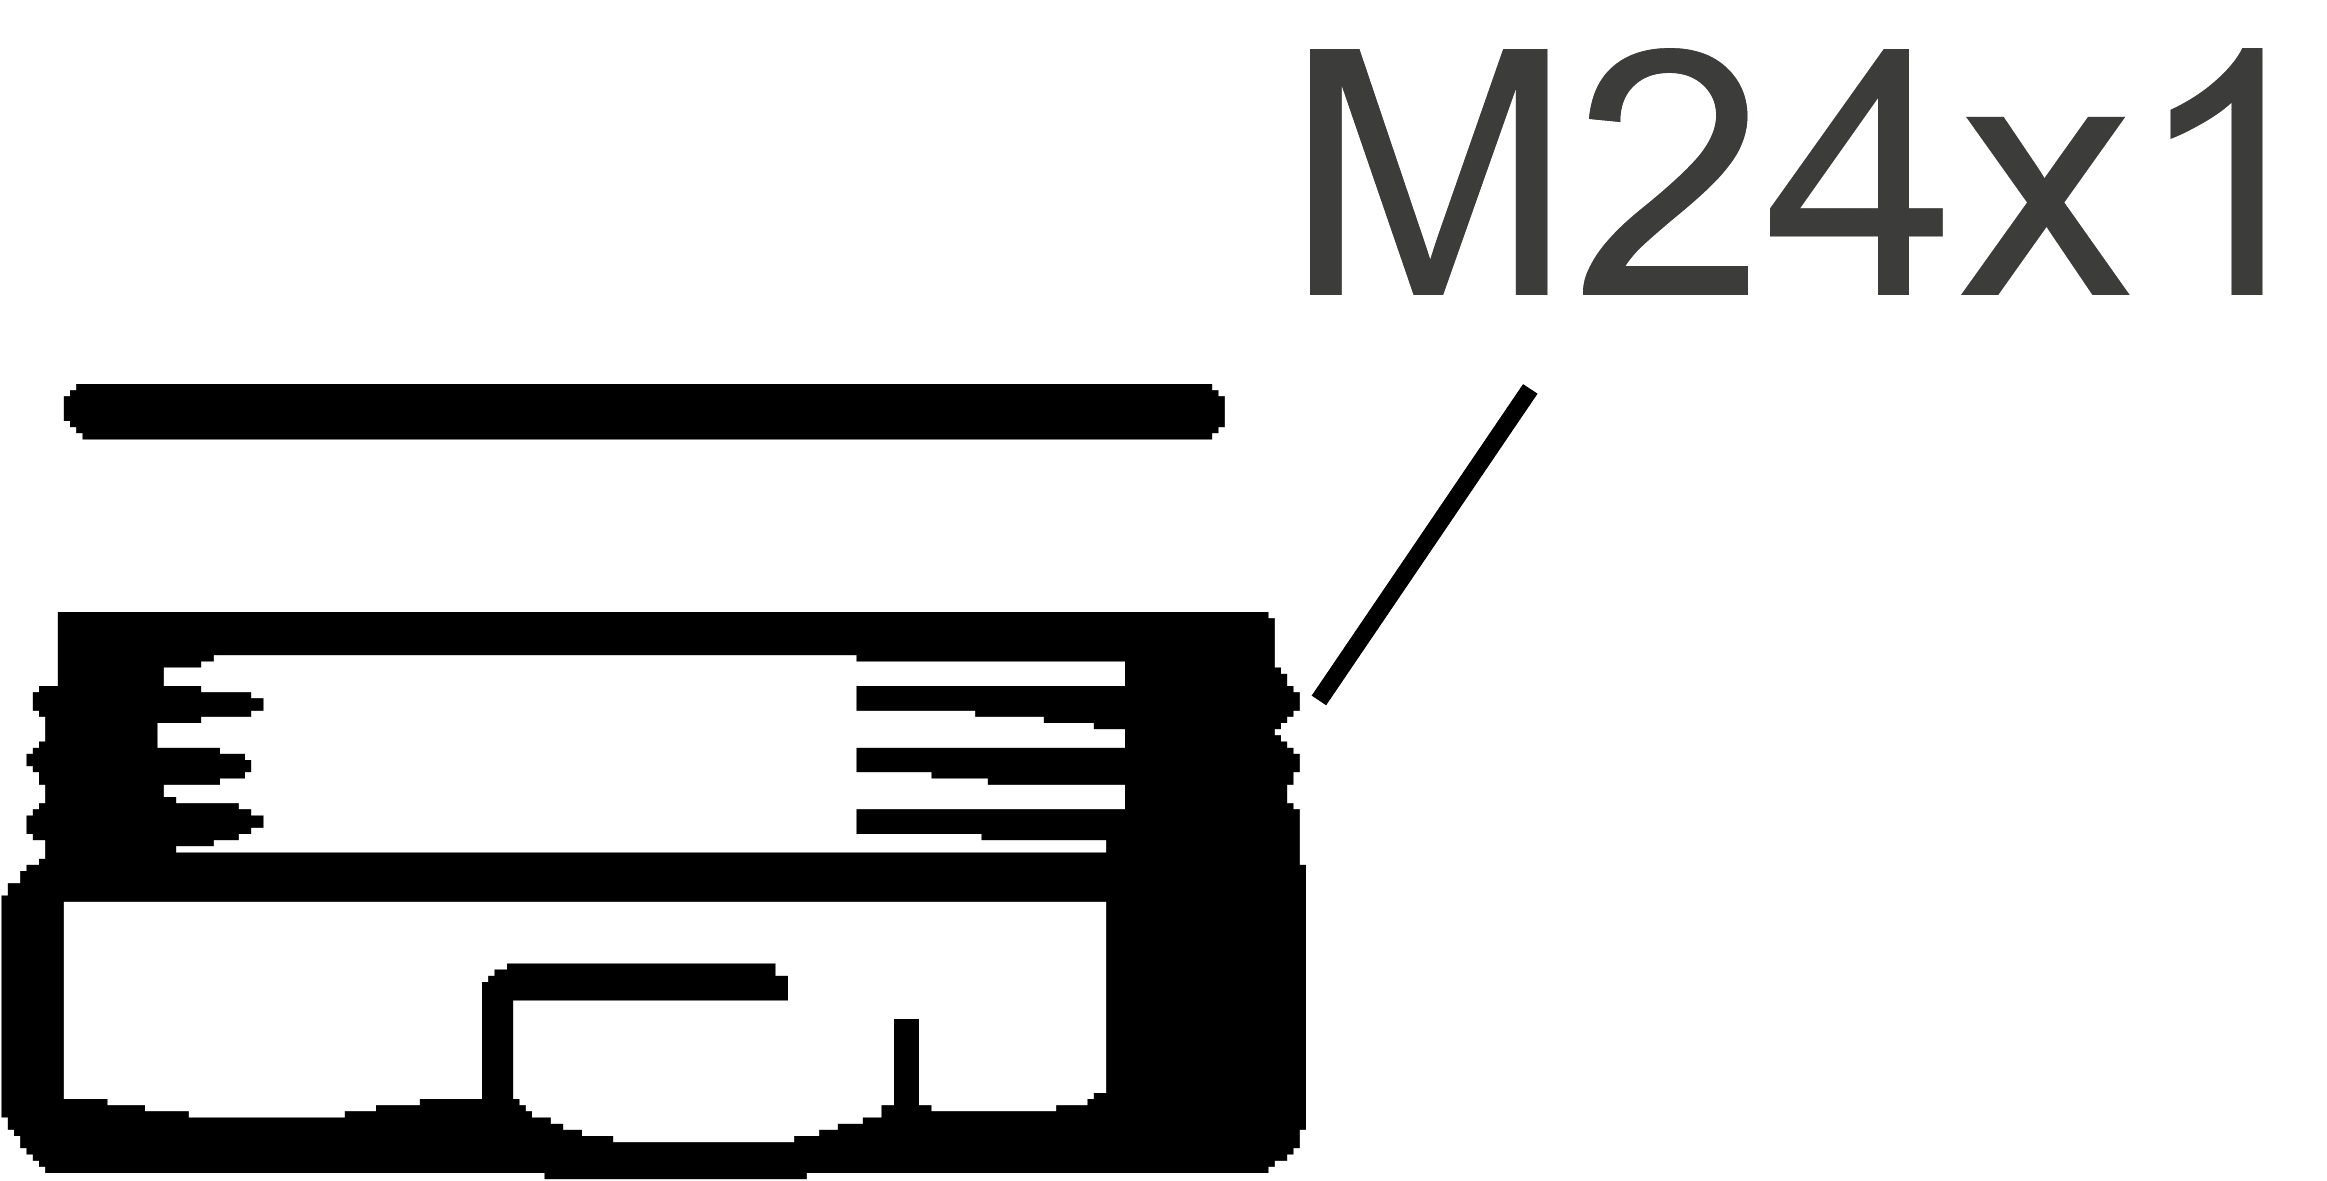 K2930-2410.png